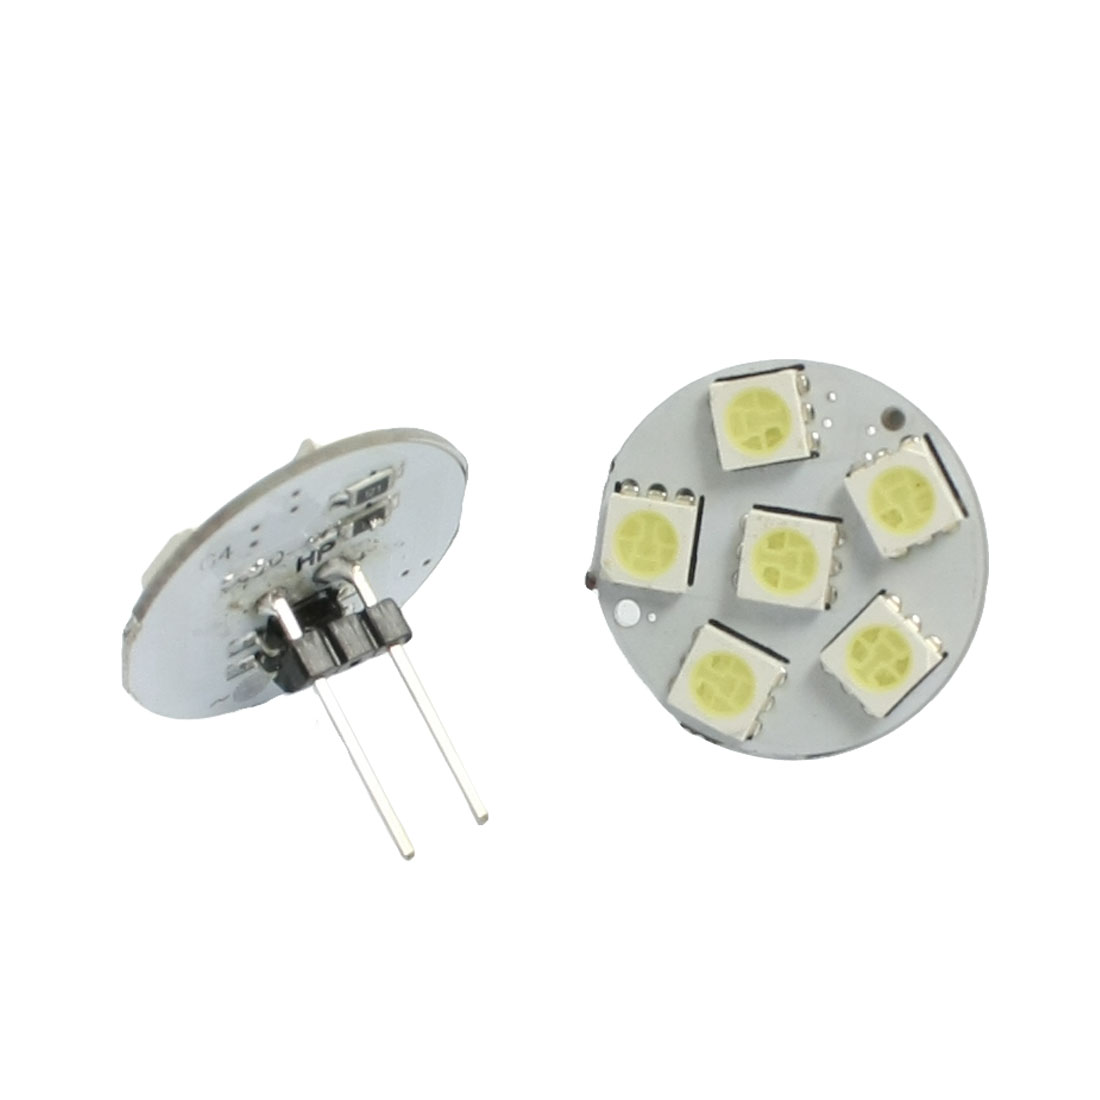 2 Pcs Vertical Pin G4 White 5050 SMD 6-LED Bulb Light Dashboard Lamp